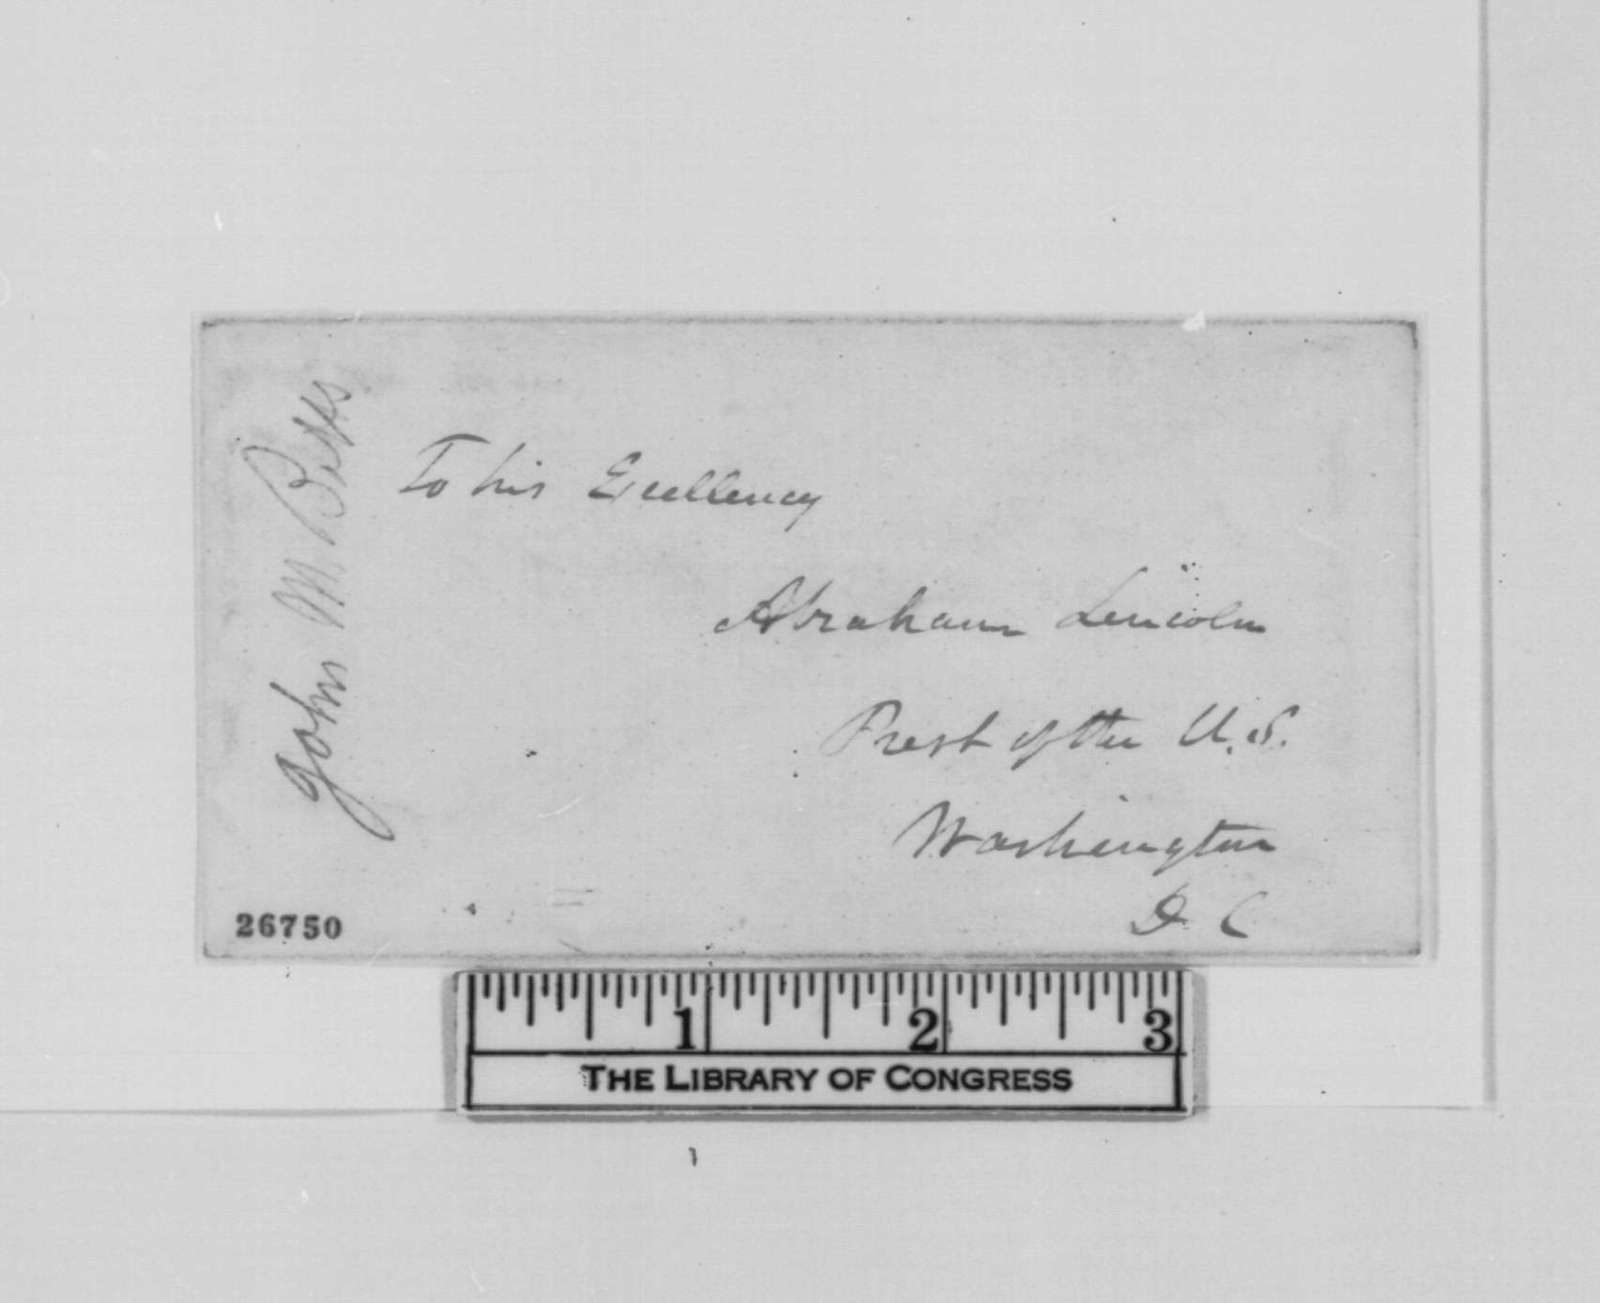 John M. Botts to Abraham Lincoln, Wednesday, September 30, 1863  (Seeks permission to purchase supplies)